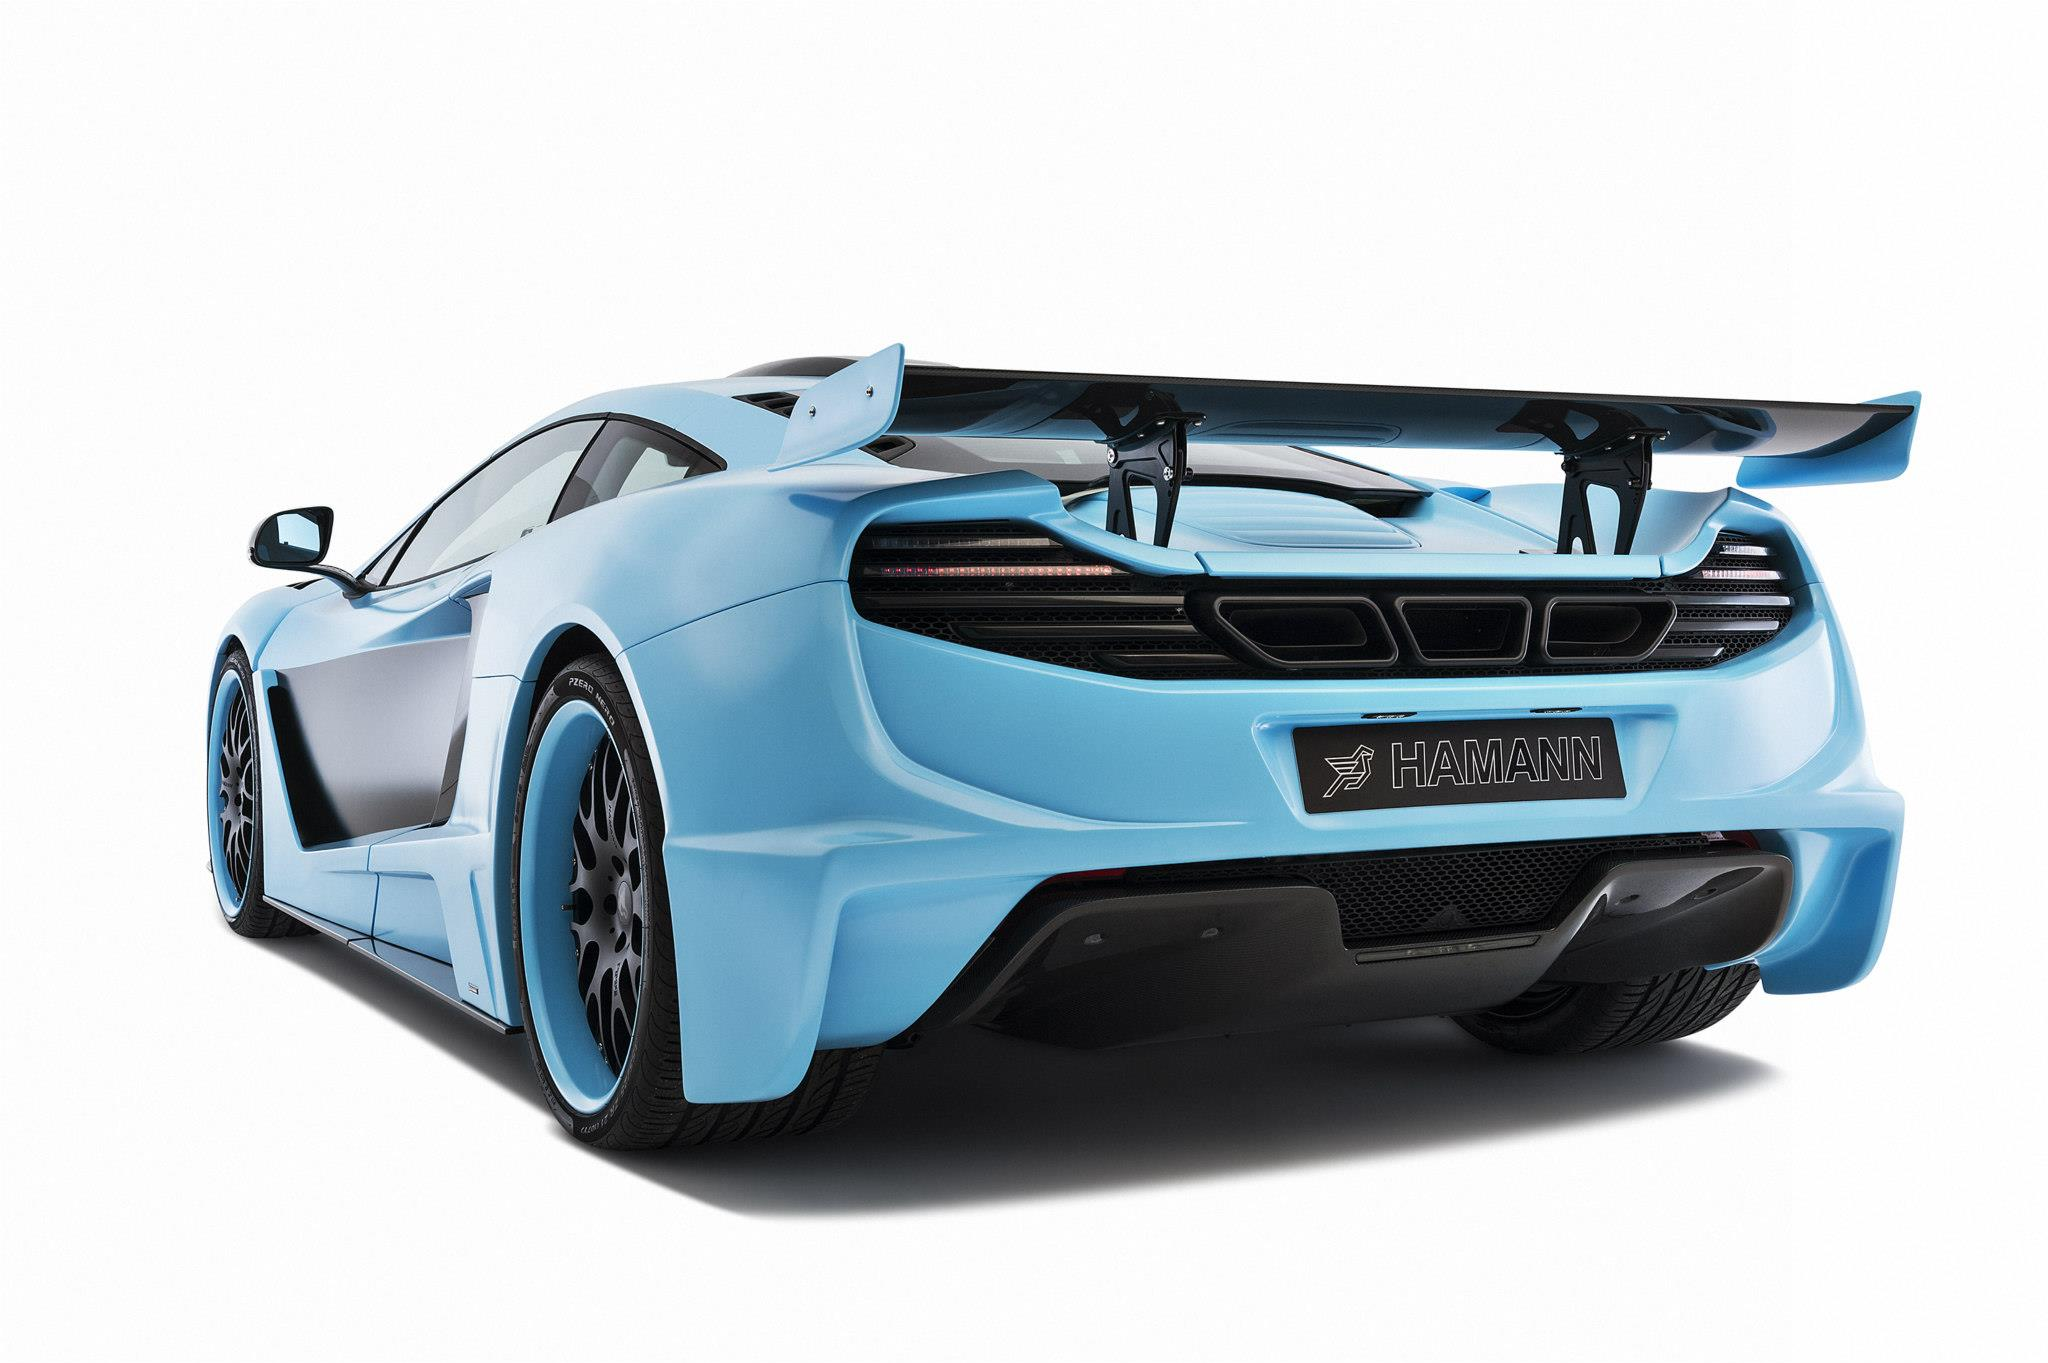 hamann blue memor mclaren mp4-12c - picture 80030